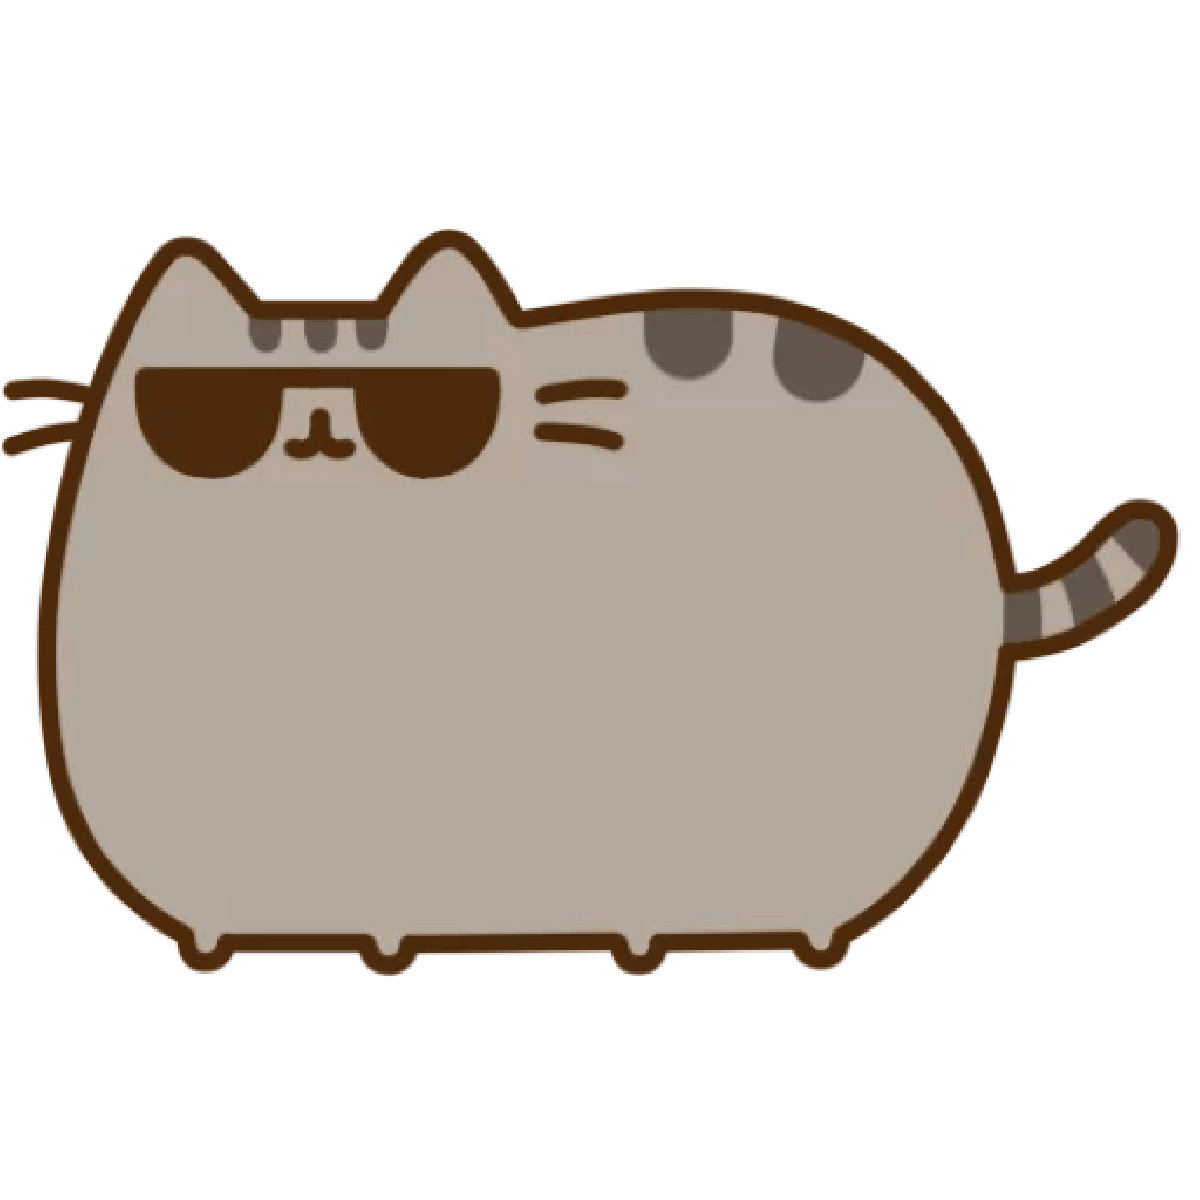 tricouri si bluze cu cool pusheen with glasses design hat clip art outline hat clip art cookies and milk